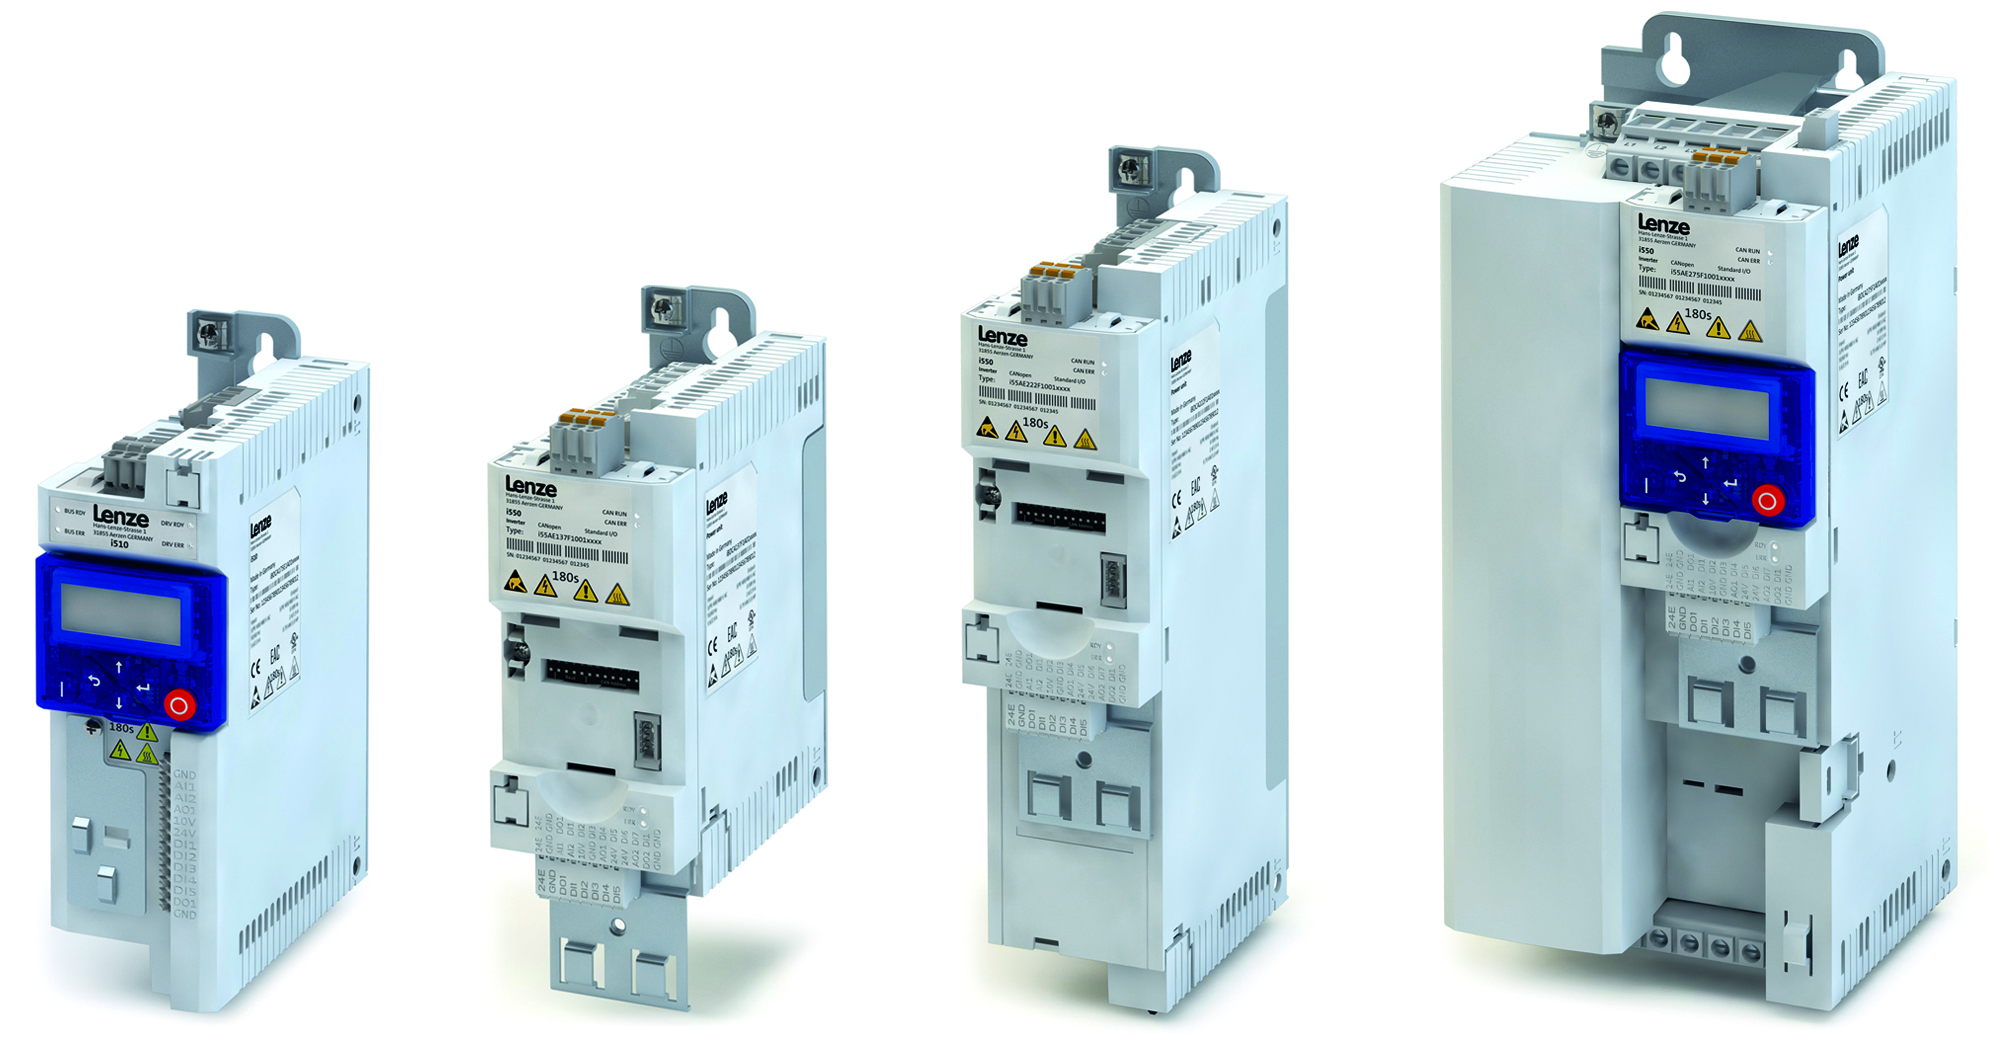 Lenze's modular i500 frequency inverters bundle leading-edge control tech